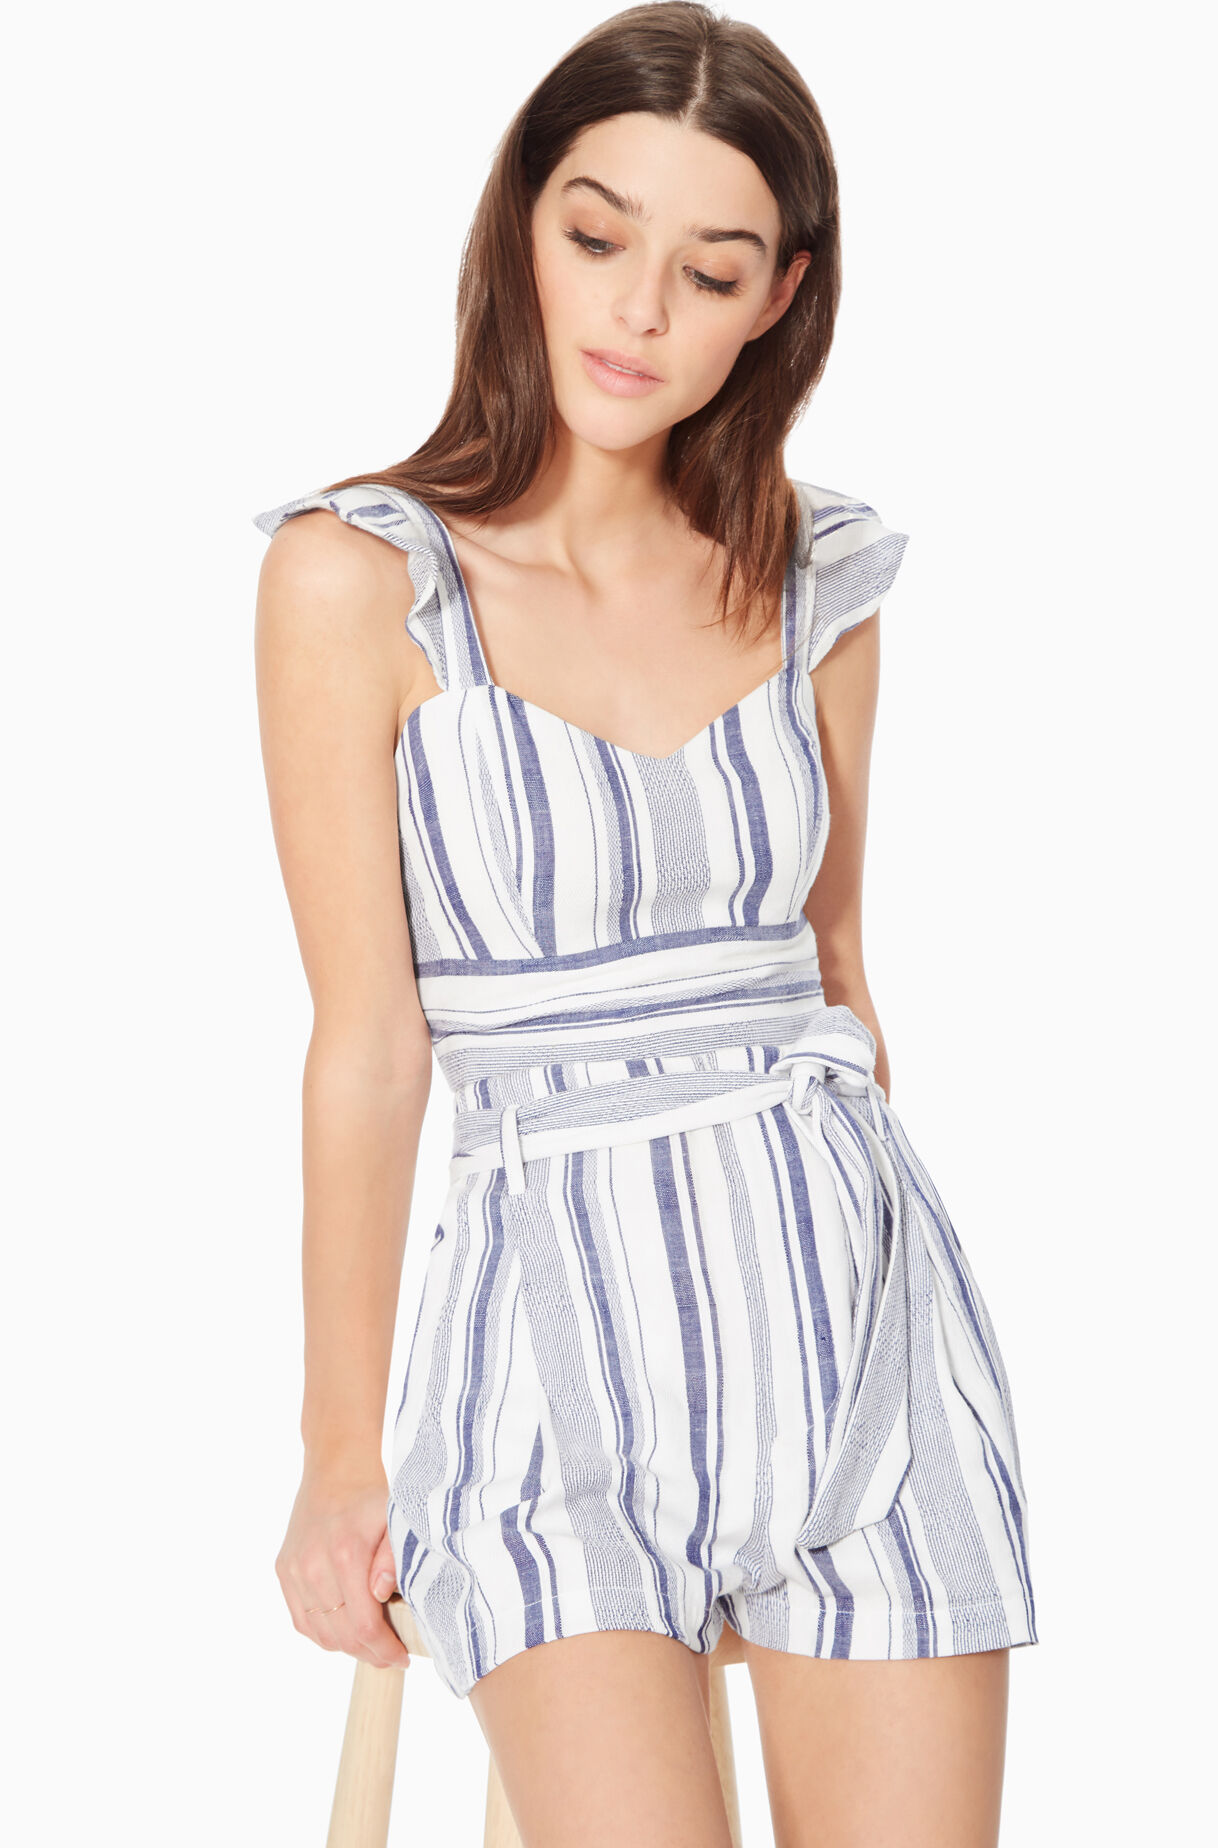 P8A5229CYD-Aquarius Stripe